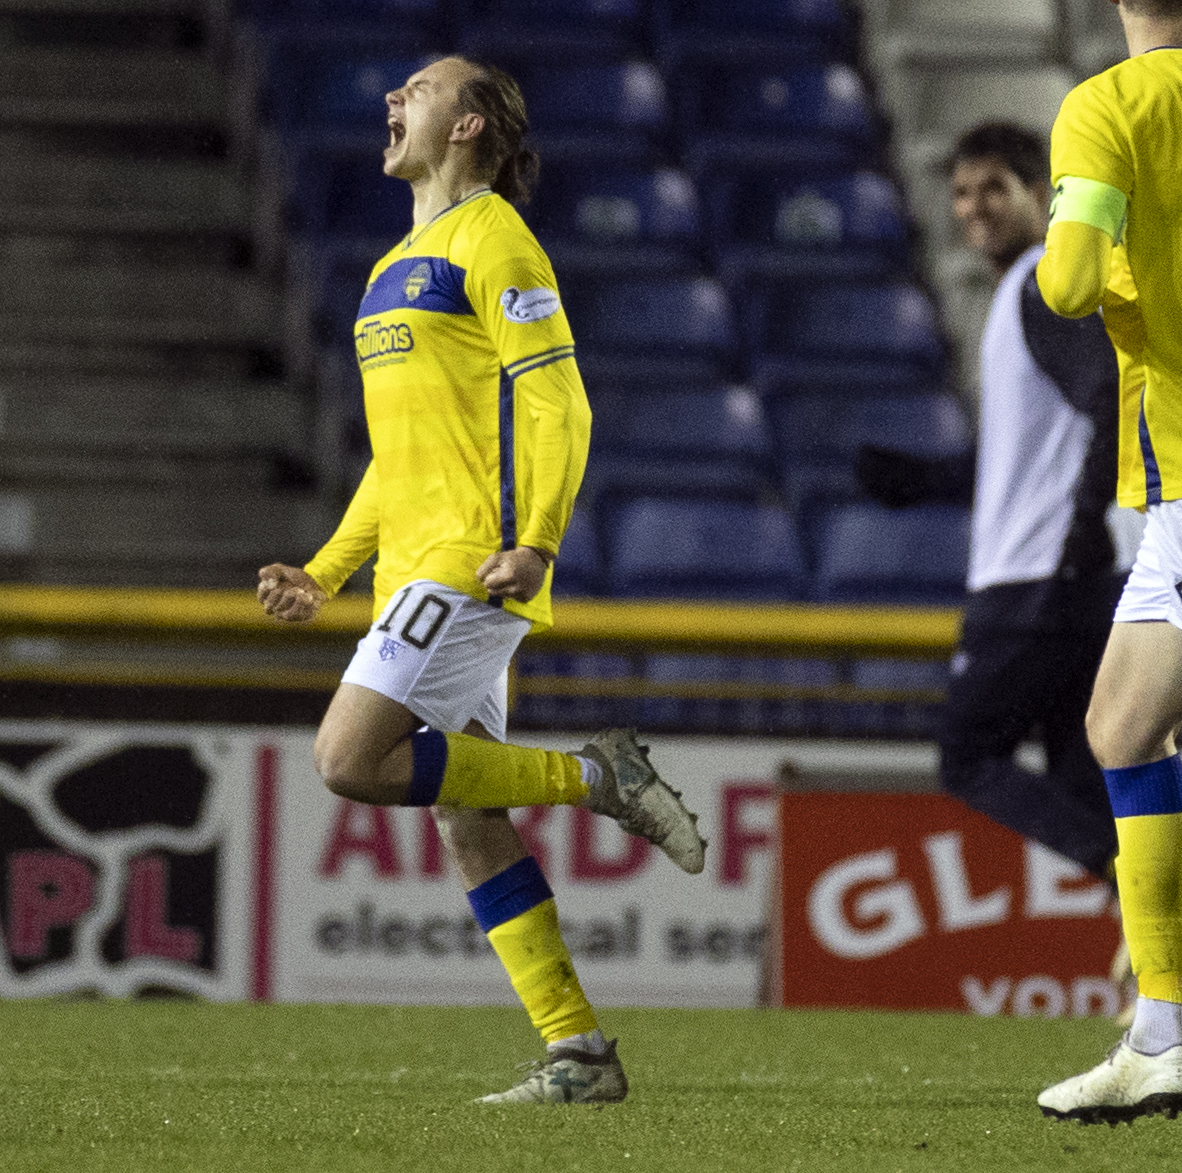 Morton man Aidan Nesbitt says 'weight has been lifted' after Inverness win